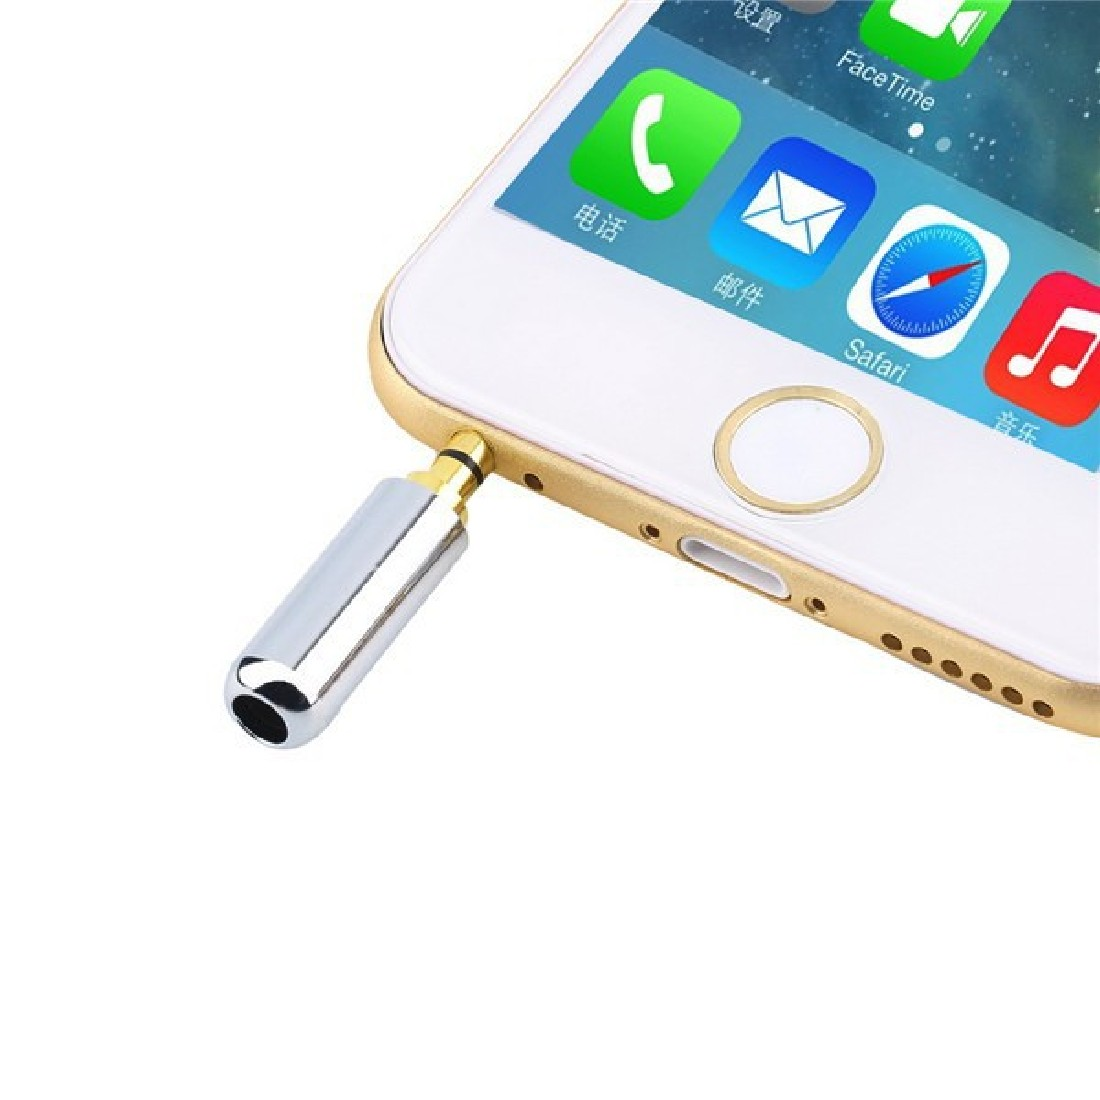 3.5 mm 1/8 4 Poles Stereo Jack Plug Dual Channel Cover Connector Plugs for Headphone Earphone Soldering3.5 mm 1/8 4 Poles Stereo Jack Plug Dual Channel Cover Connector Plugs for Headphone Earphone Soldering